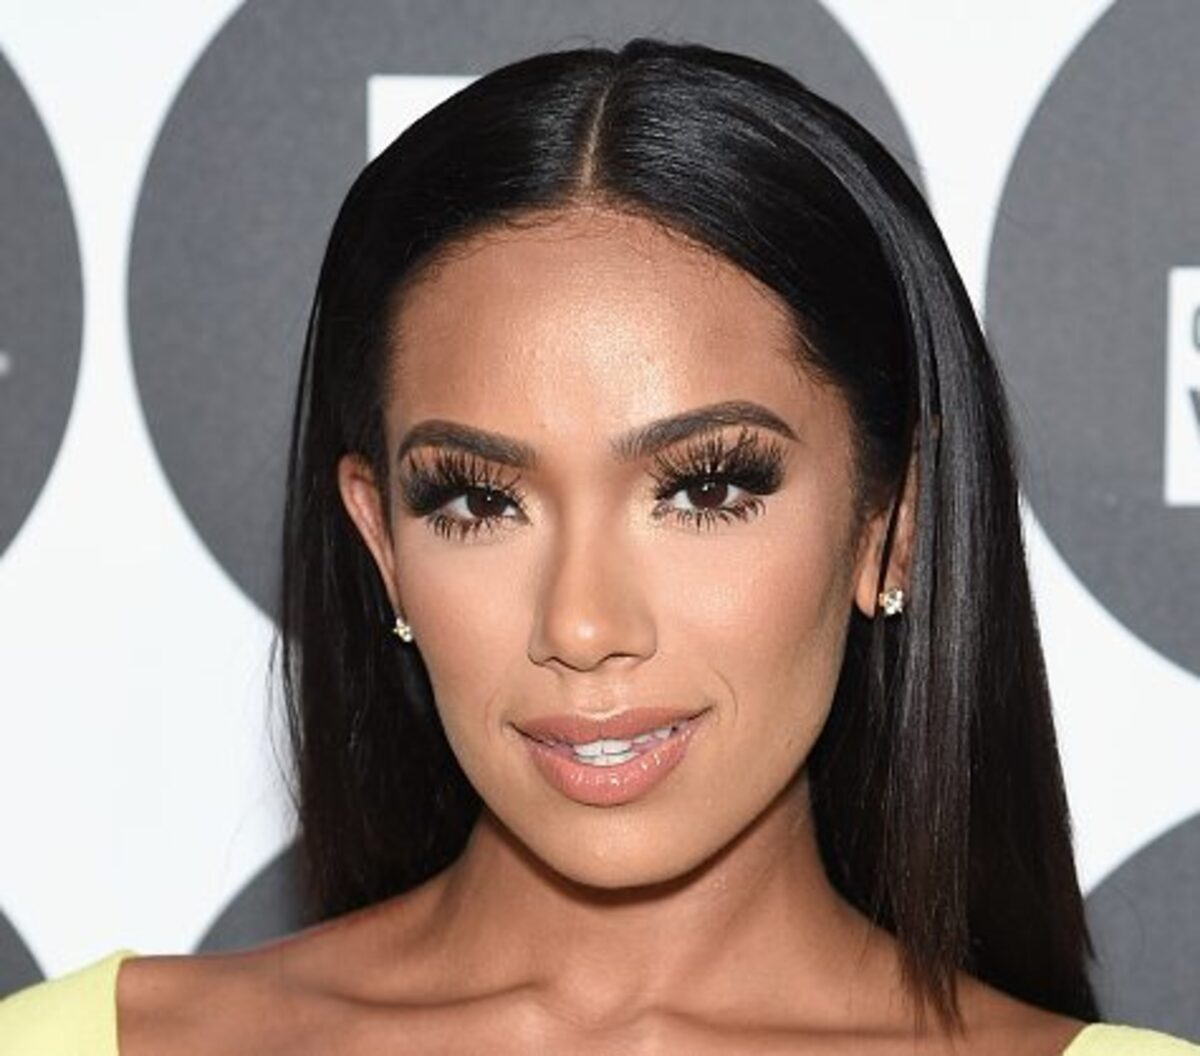 Erica Mena Breaks The Internet And Poses Topless – Check Out Her Racy Photo Here